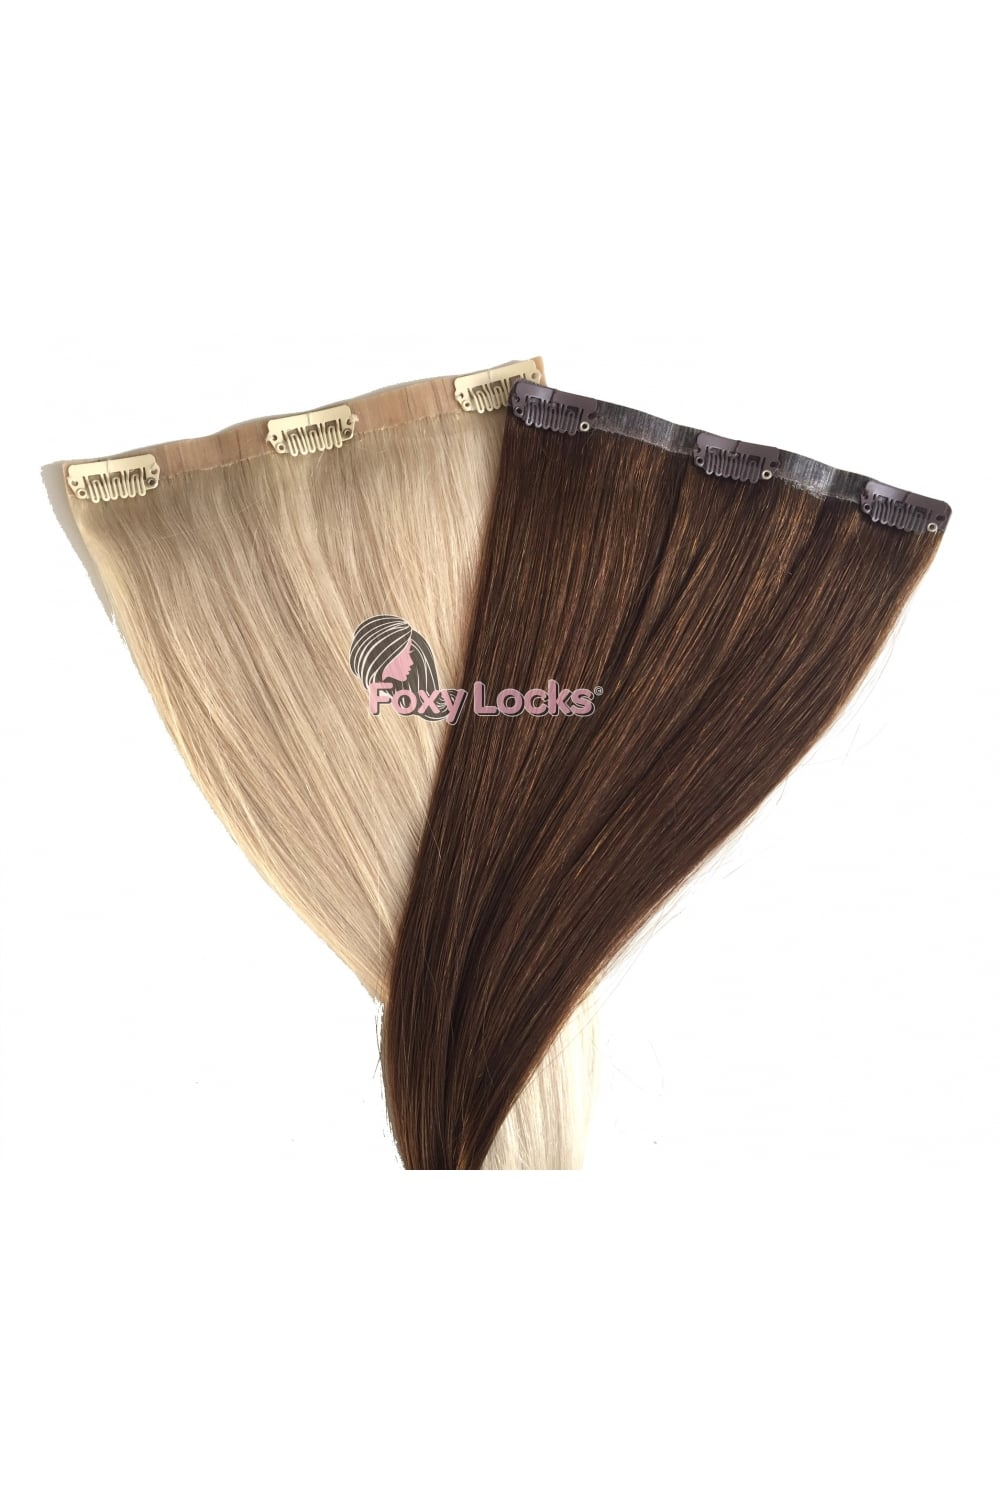 Sunkissed Brown Superior Seamless 22 Clip In Hair Extensions 230g